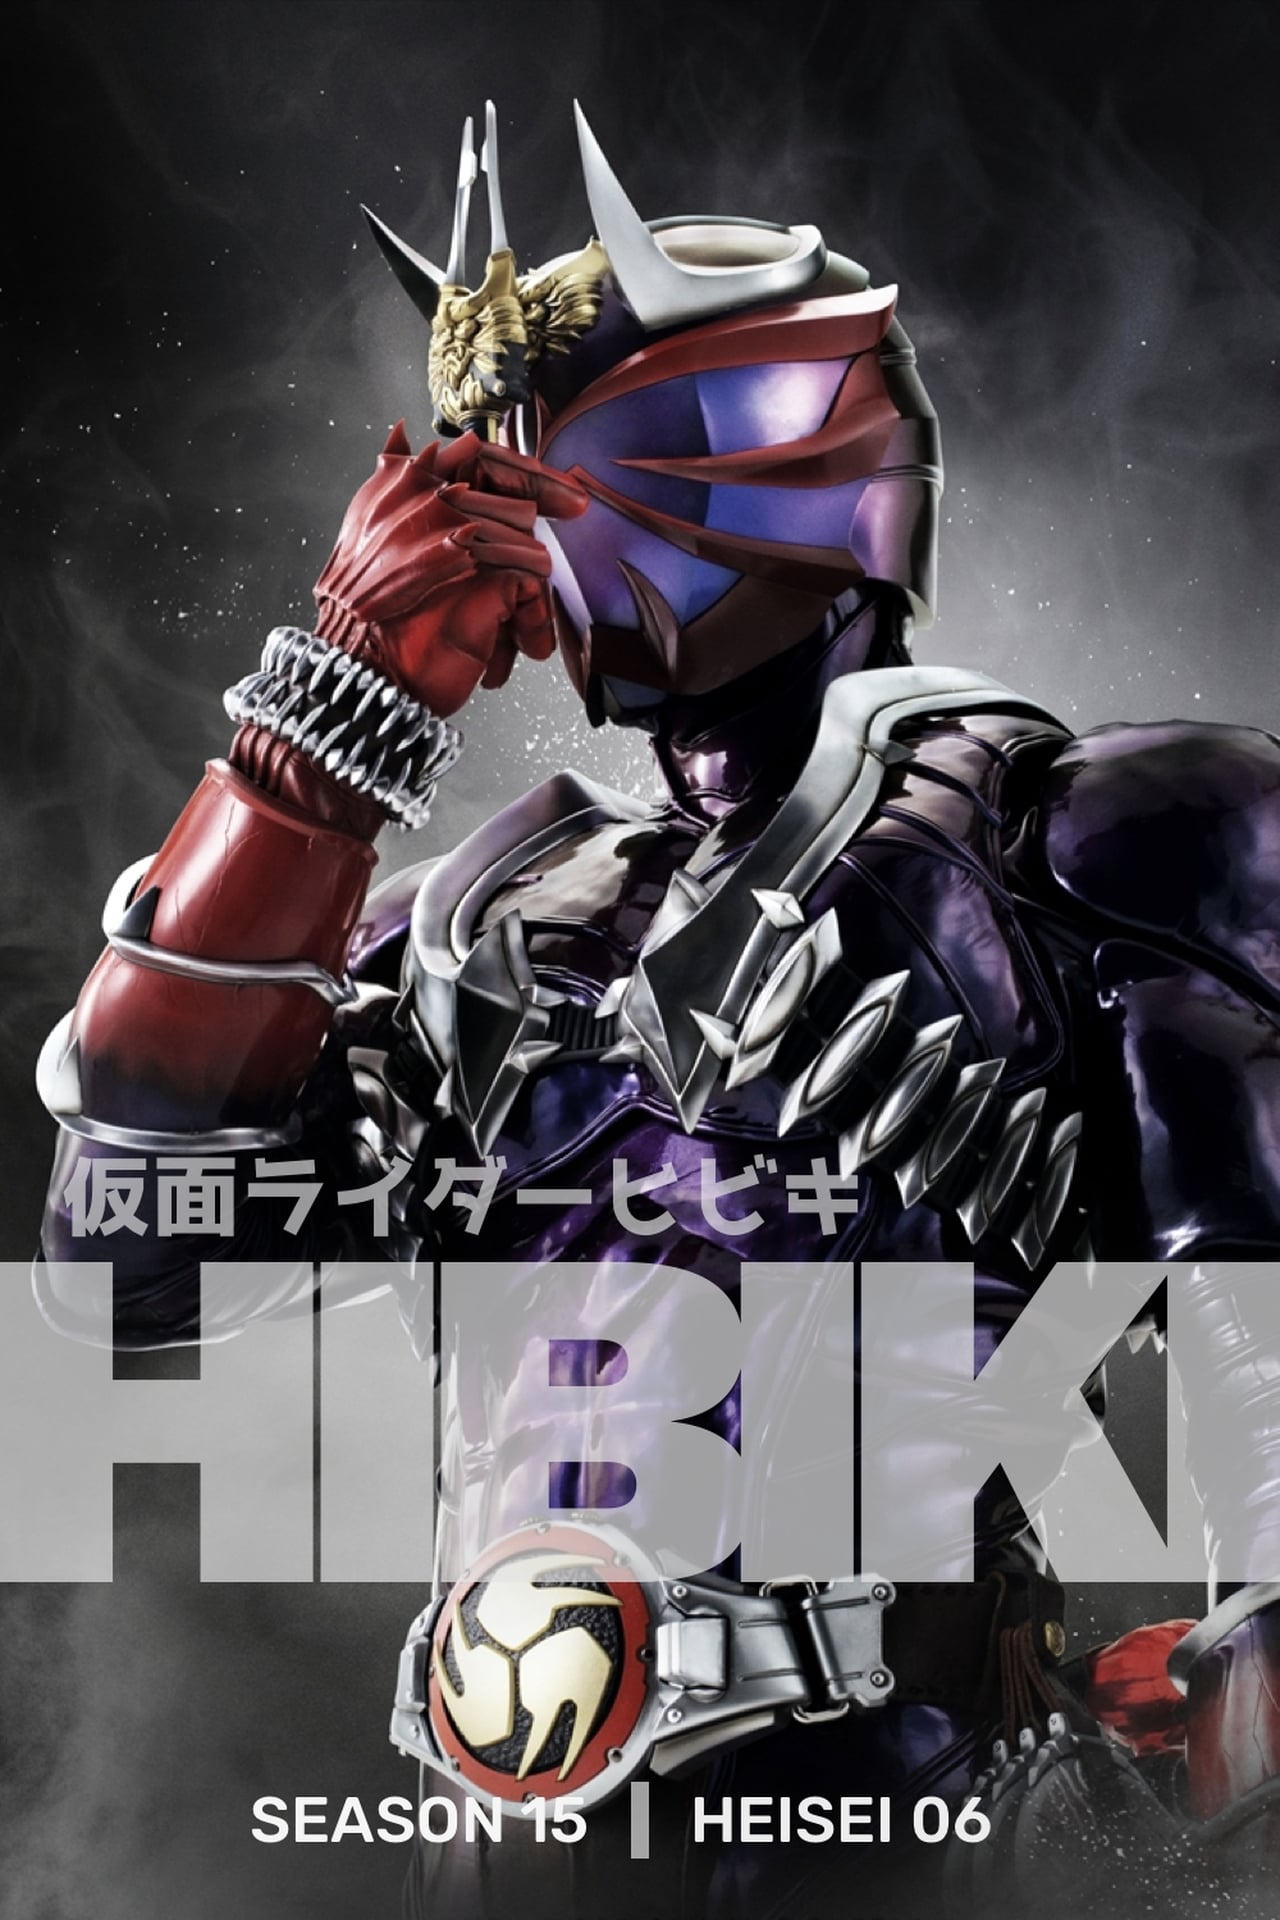 Watch Kamen Rider Season 15 Online